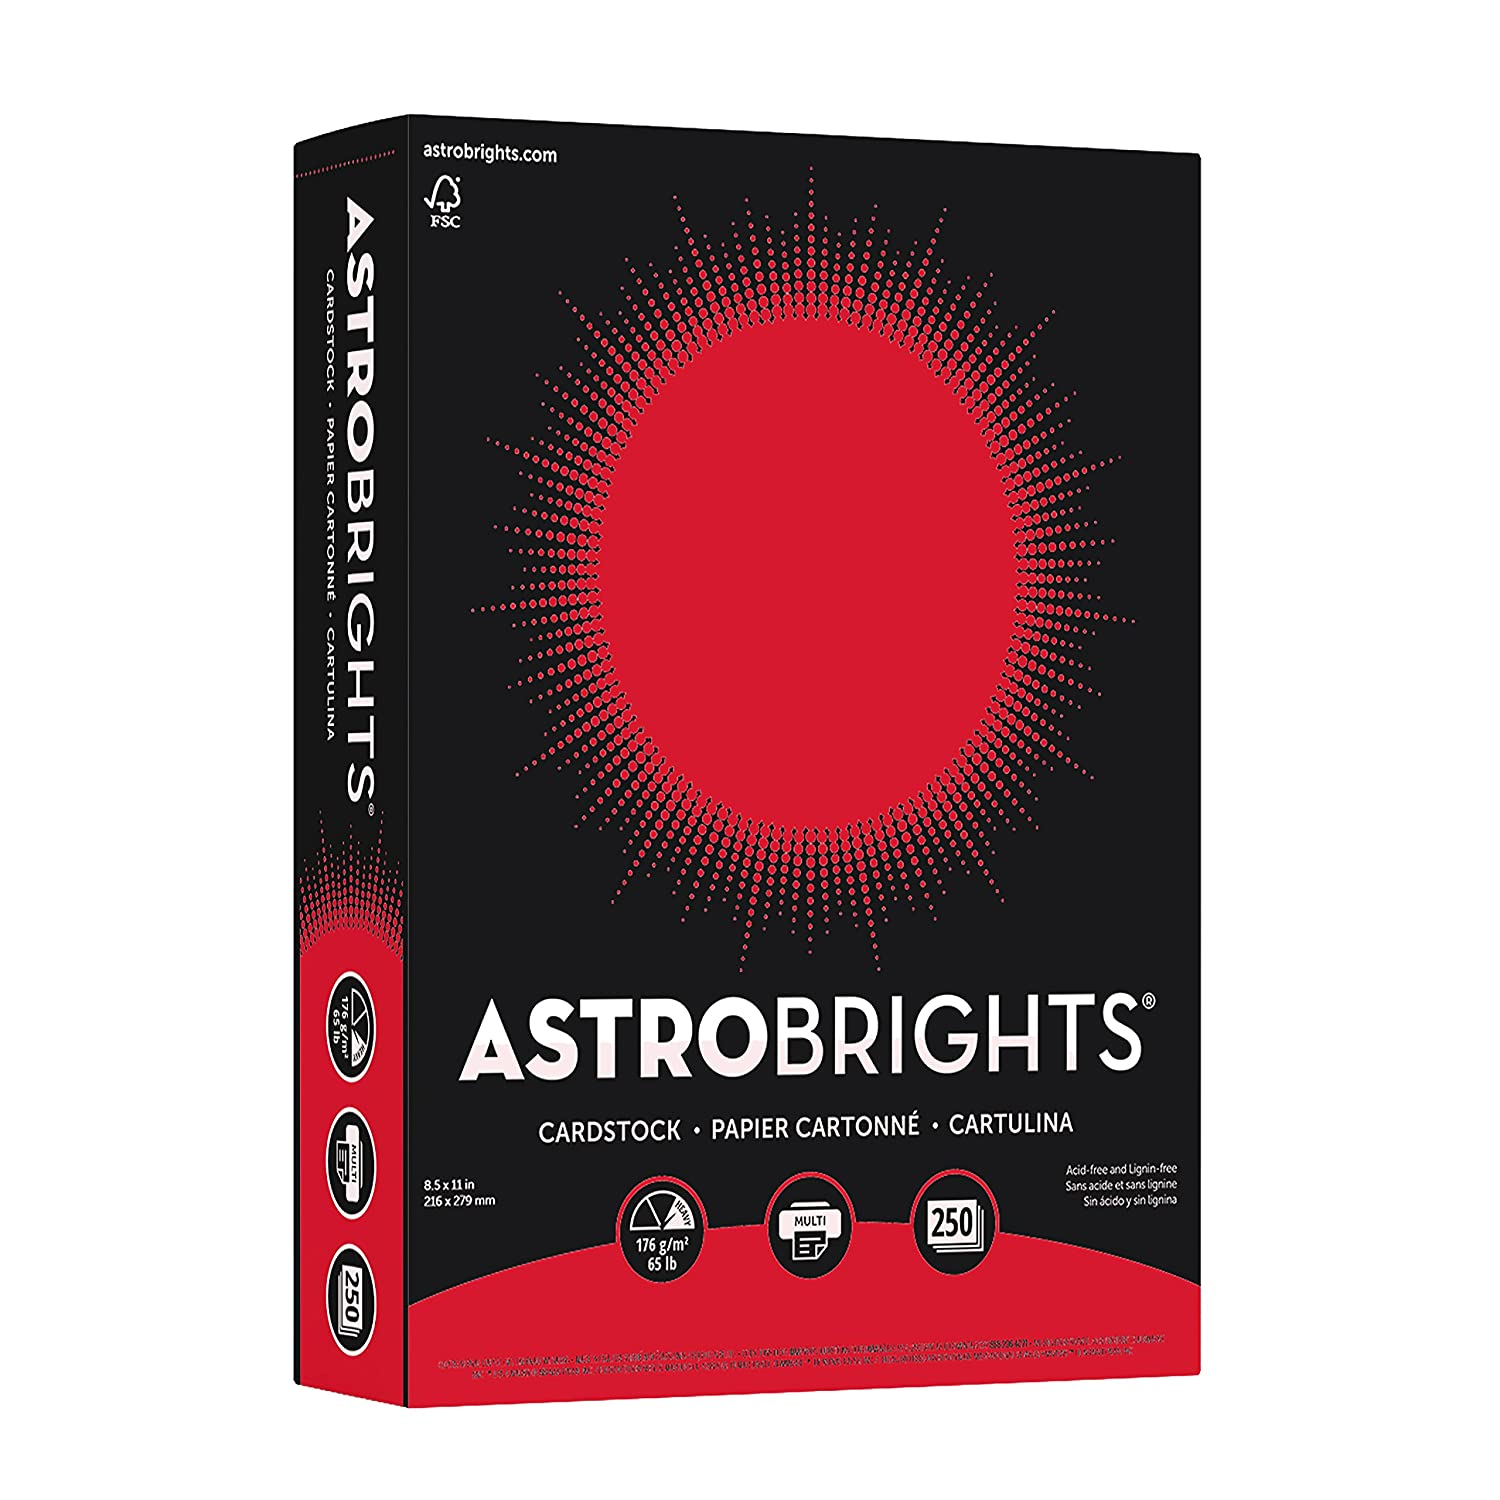 Neenah Astrobrights Premium Color Cardstock, 65 lb, 8.5 x 11 Inches, 250 Sheets, Lunar Blue Wausau Paper 21728